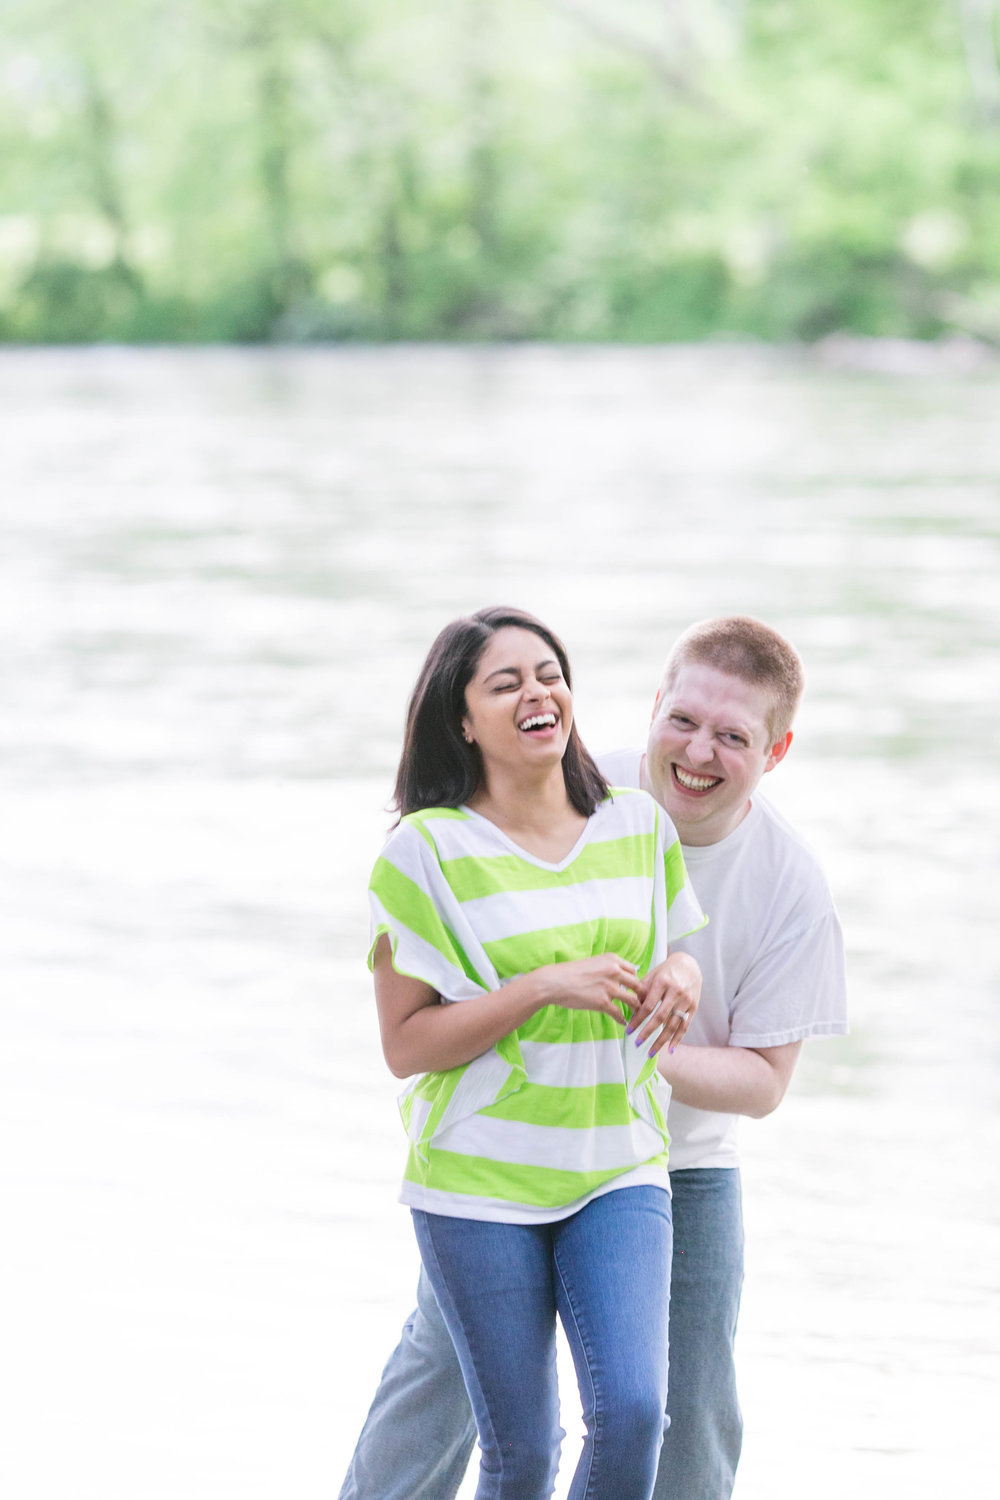 Johnson City wedding photography, Elizabethton engagement session, Tri Cities TN wedding photographer, East Tennessee wedding photography, Sycamore Shoals State Park engagement, rivers engagement